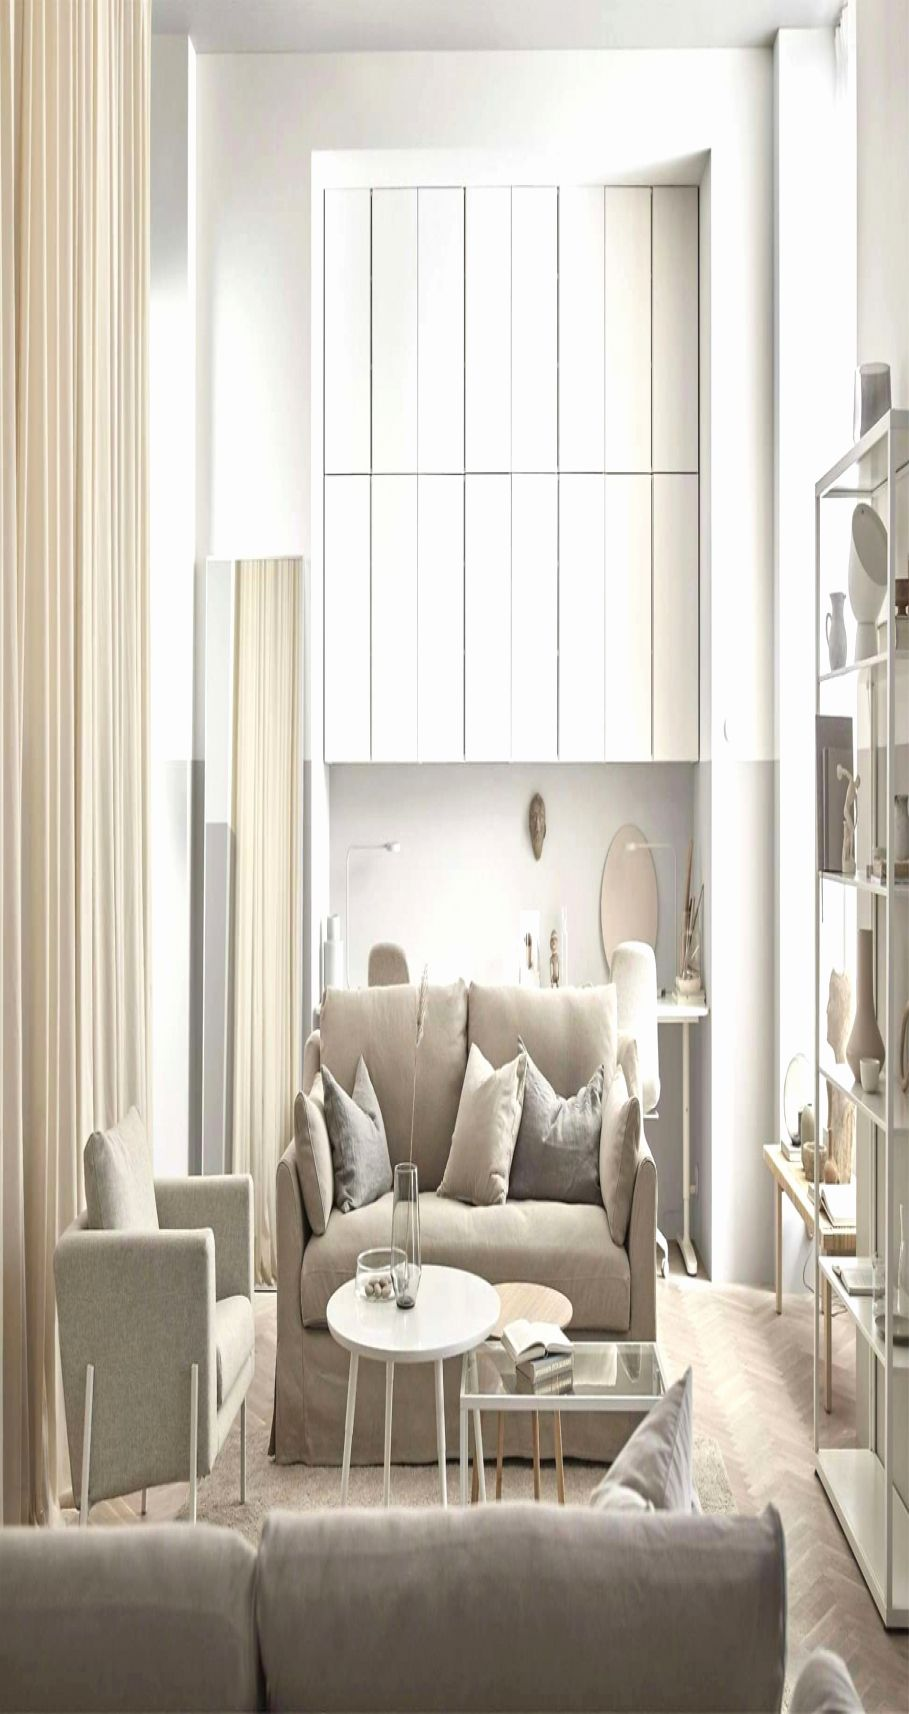 25 Schön Wohnzimmer Renovieren Ideen In 2020 Minimalist Living Room Minimalist Home Decor Beige Living Rooms